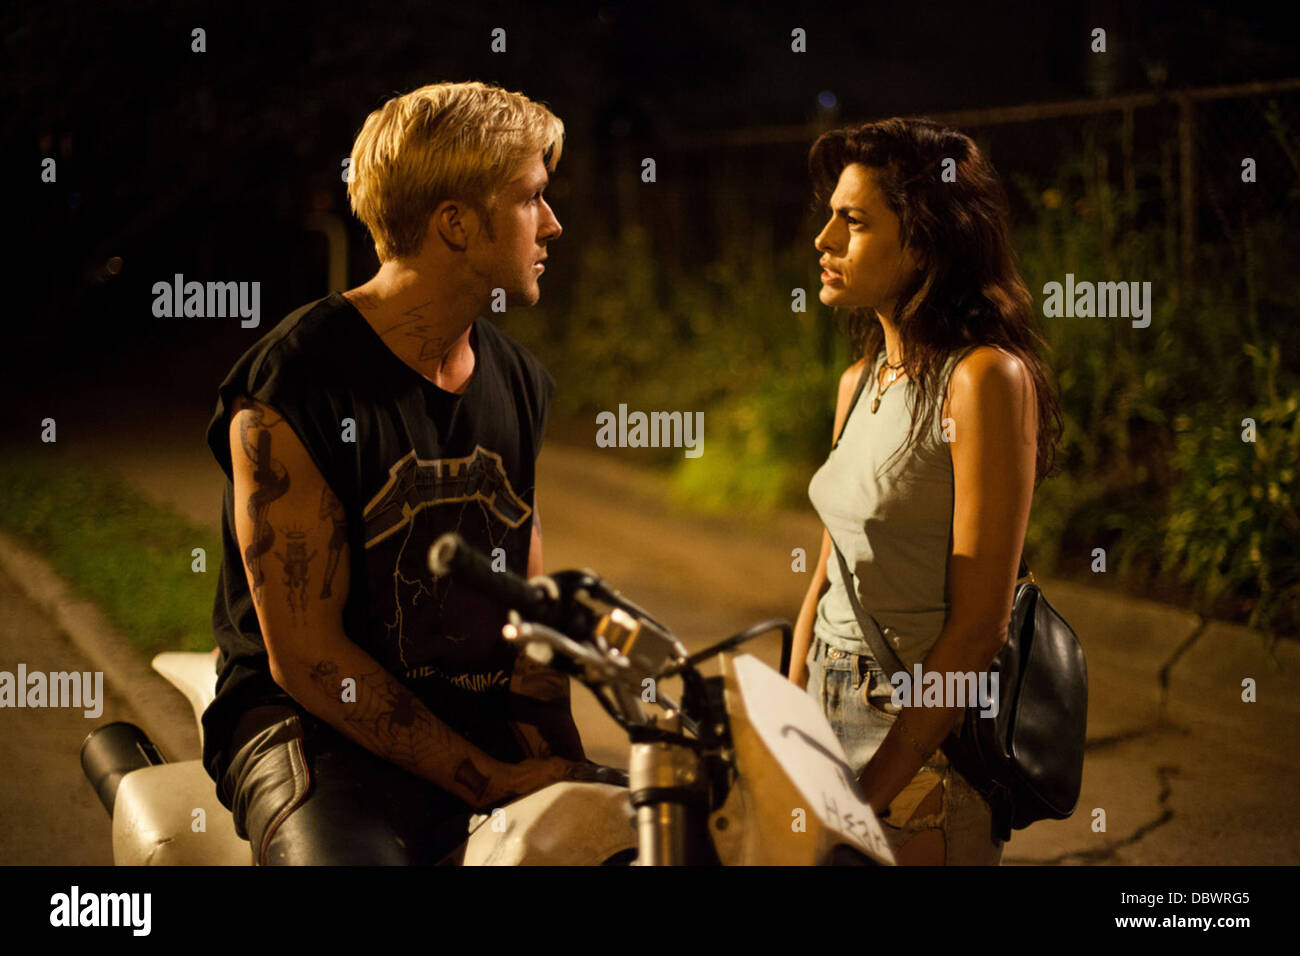 Eva Mendes The Place Beyond the Pines - 2012 naked (74 photo), Leaked Celebrity pic